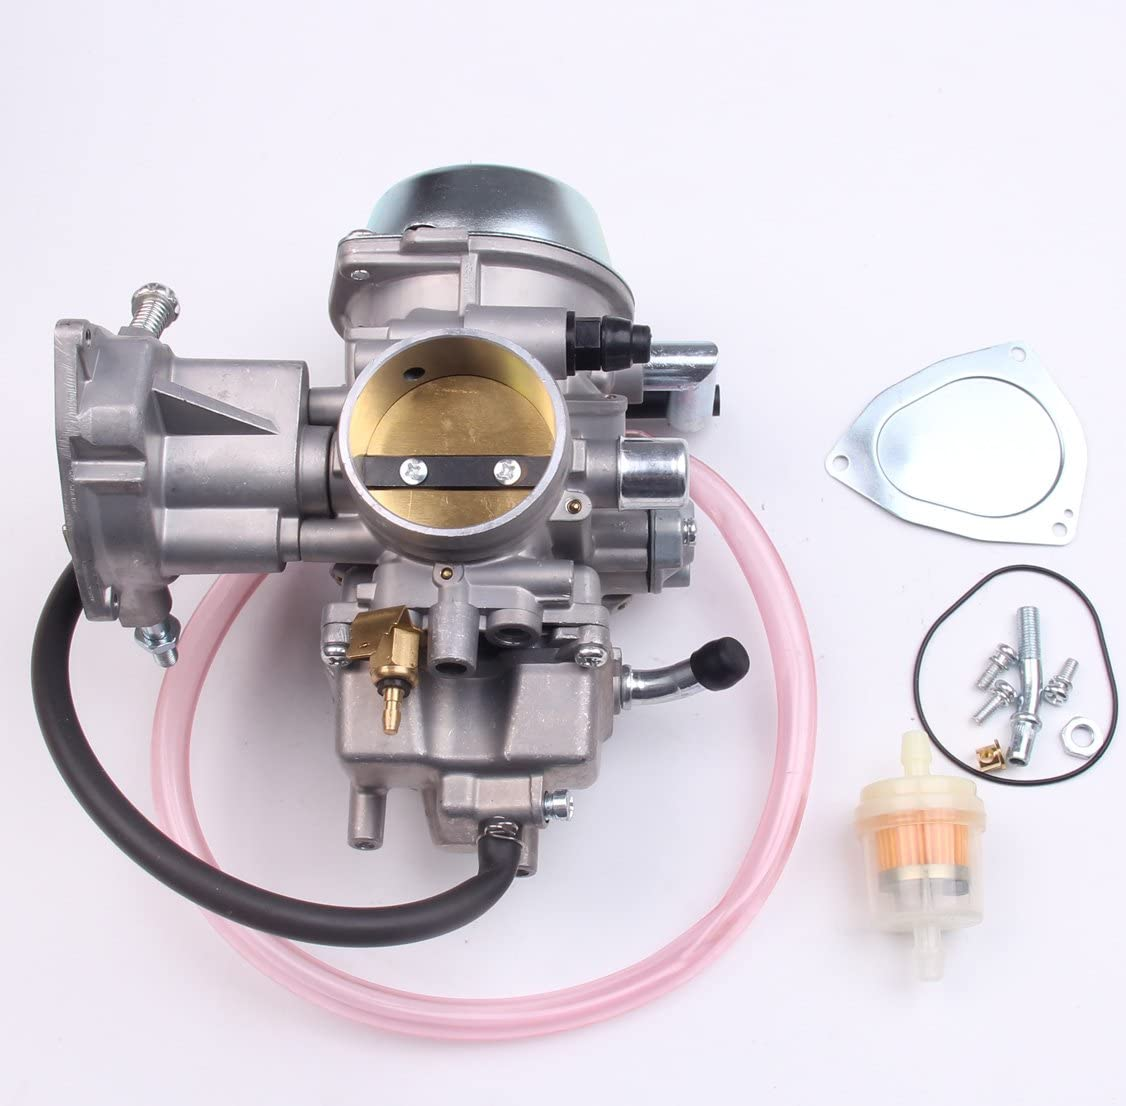 Carburetor for 2004-2007 Yamaha Rhino 660 YXR660 UTV 2006 Carb Carby